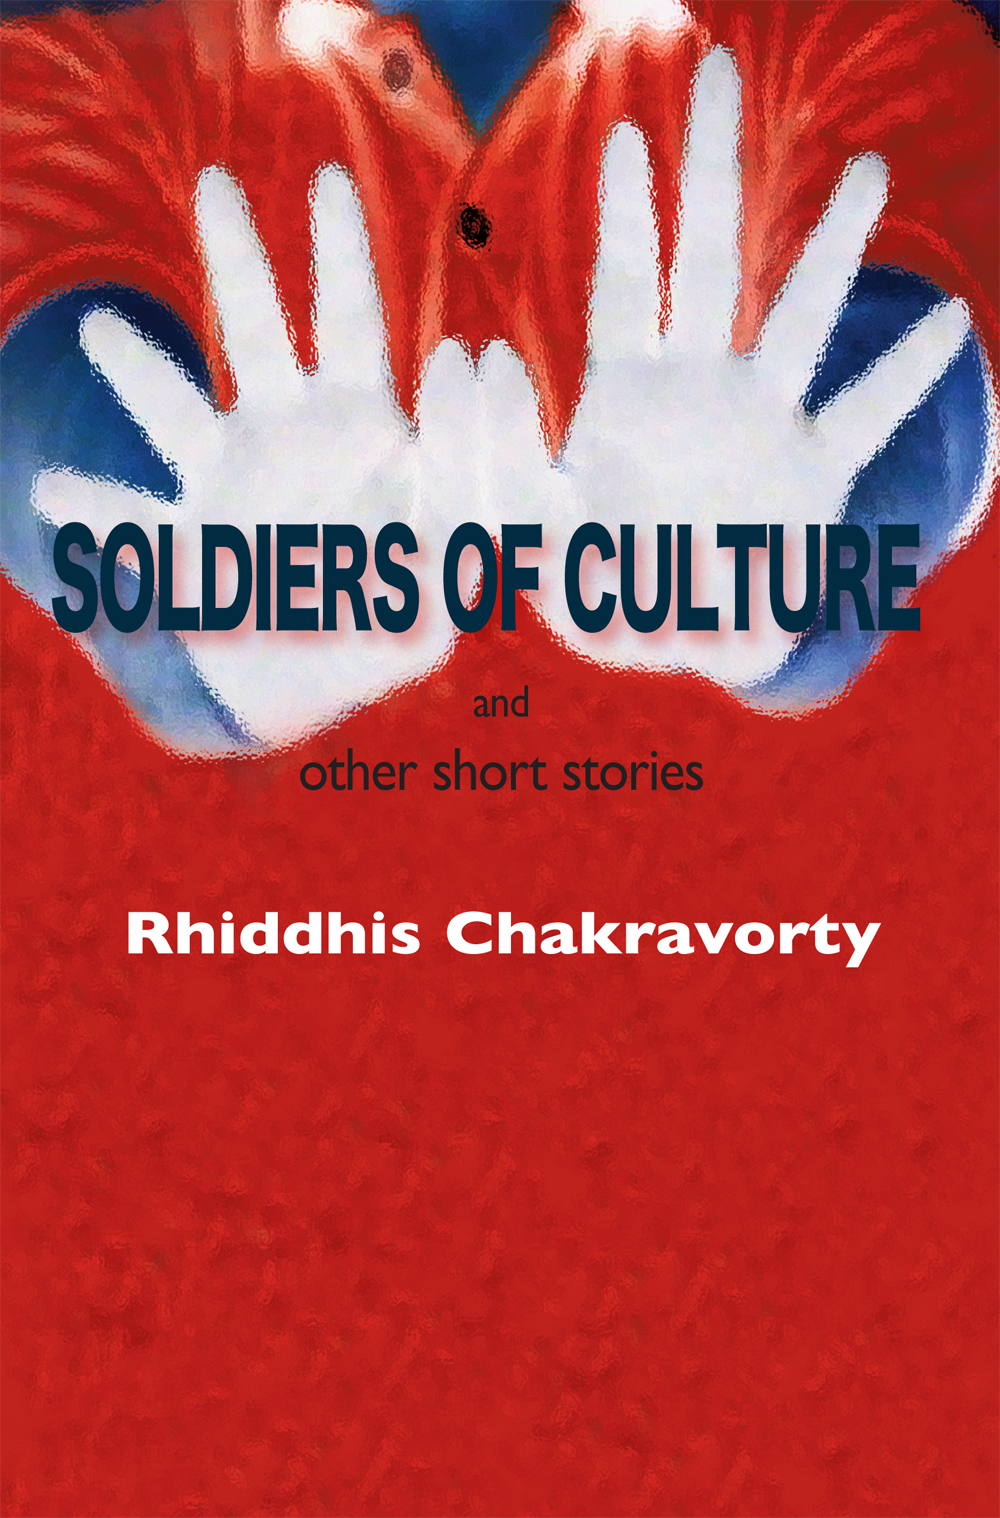 Soldiers of Culture and other short stories